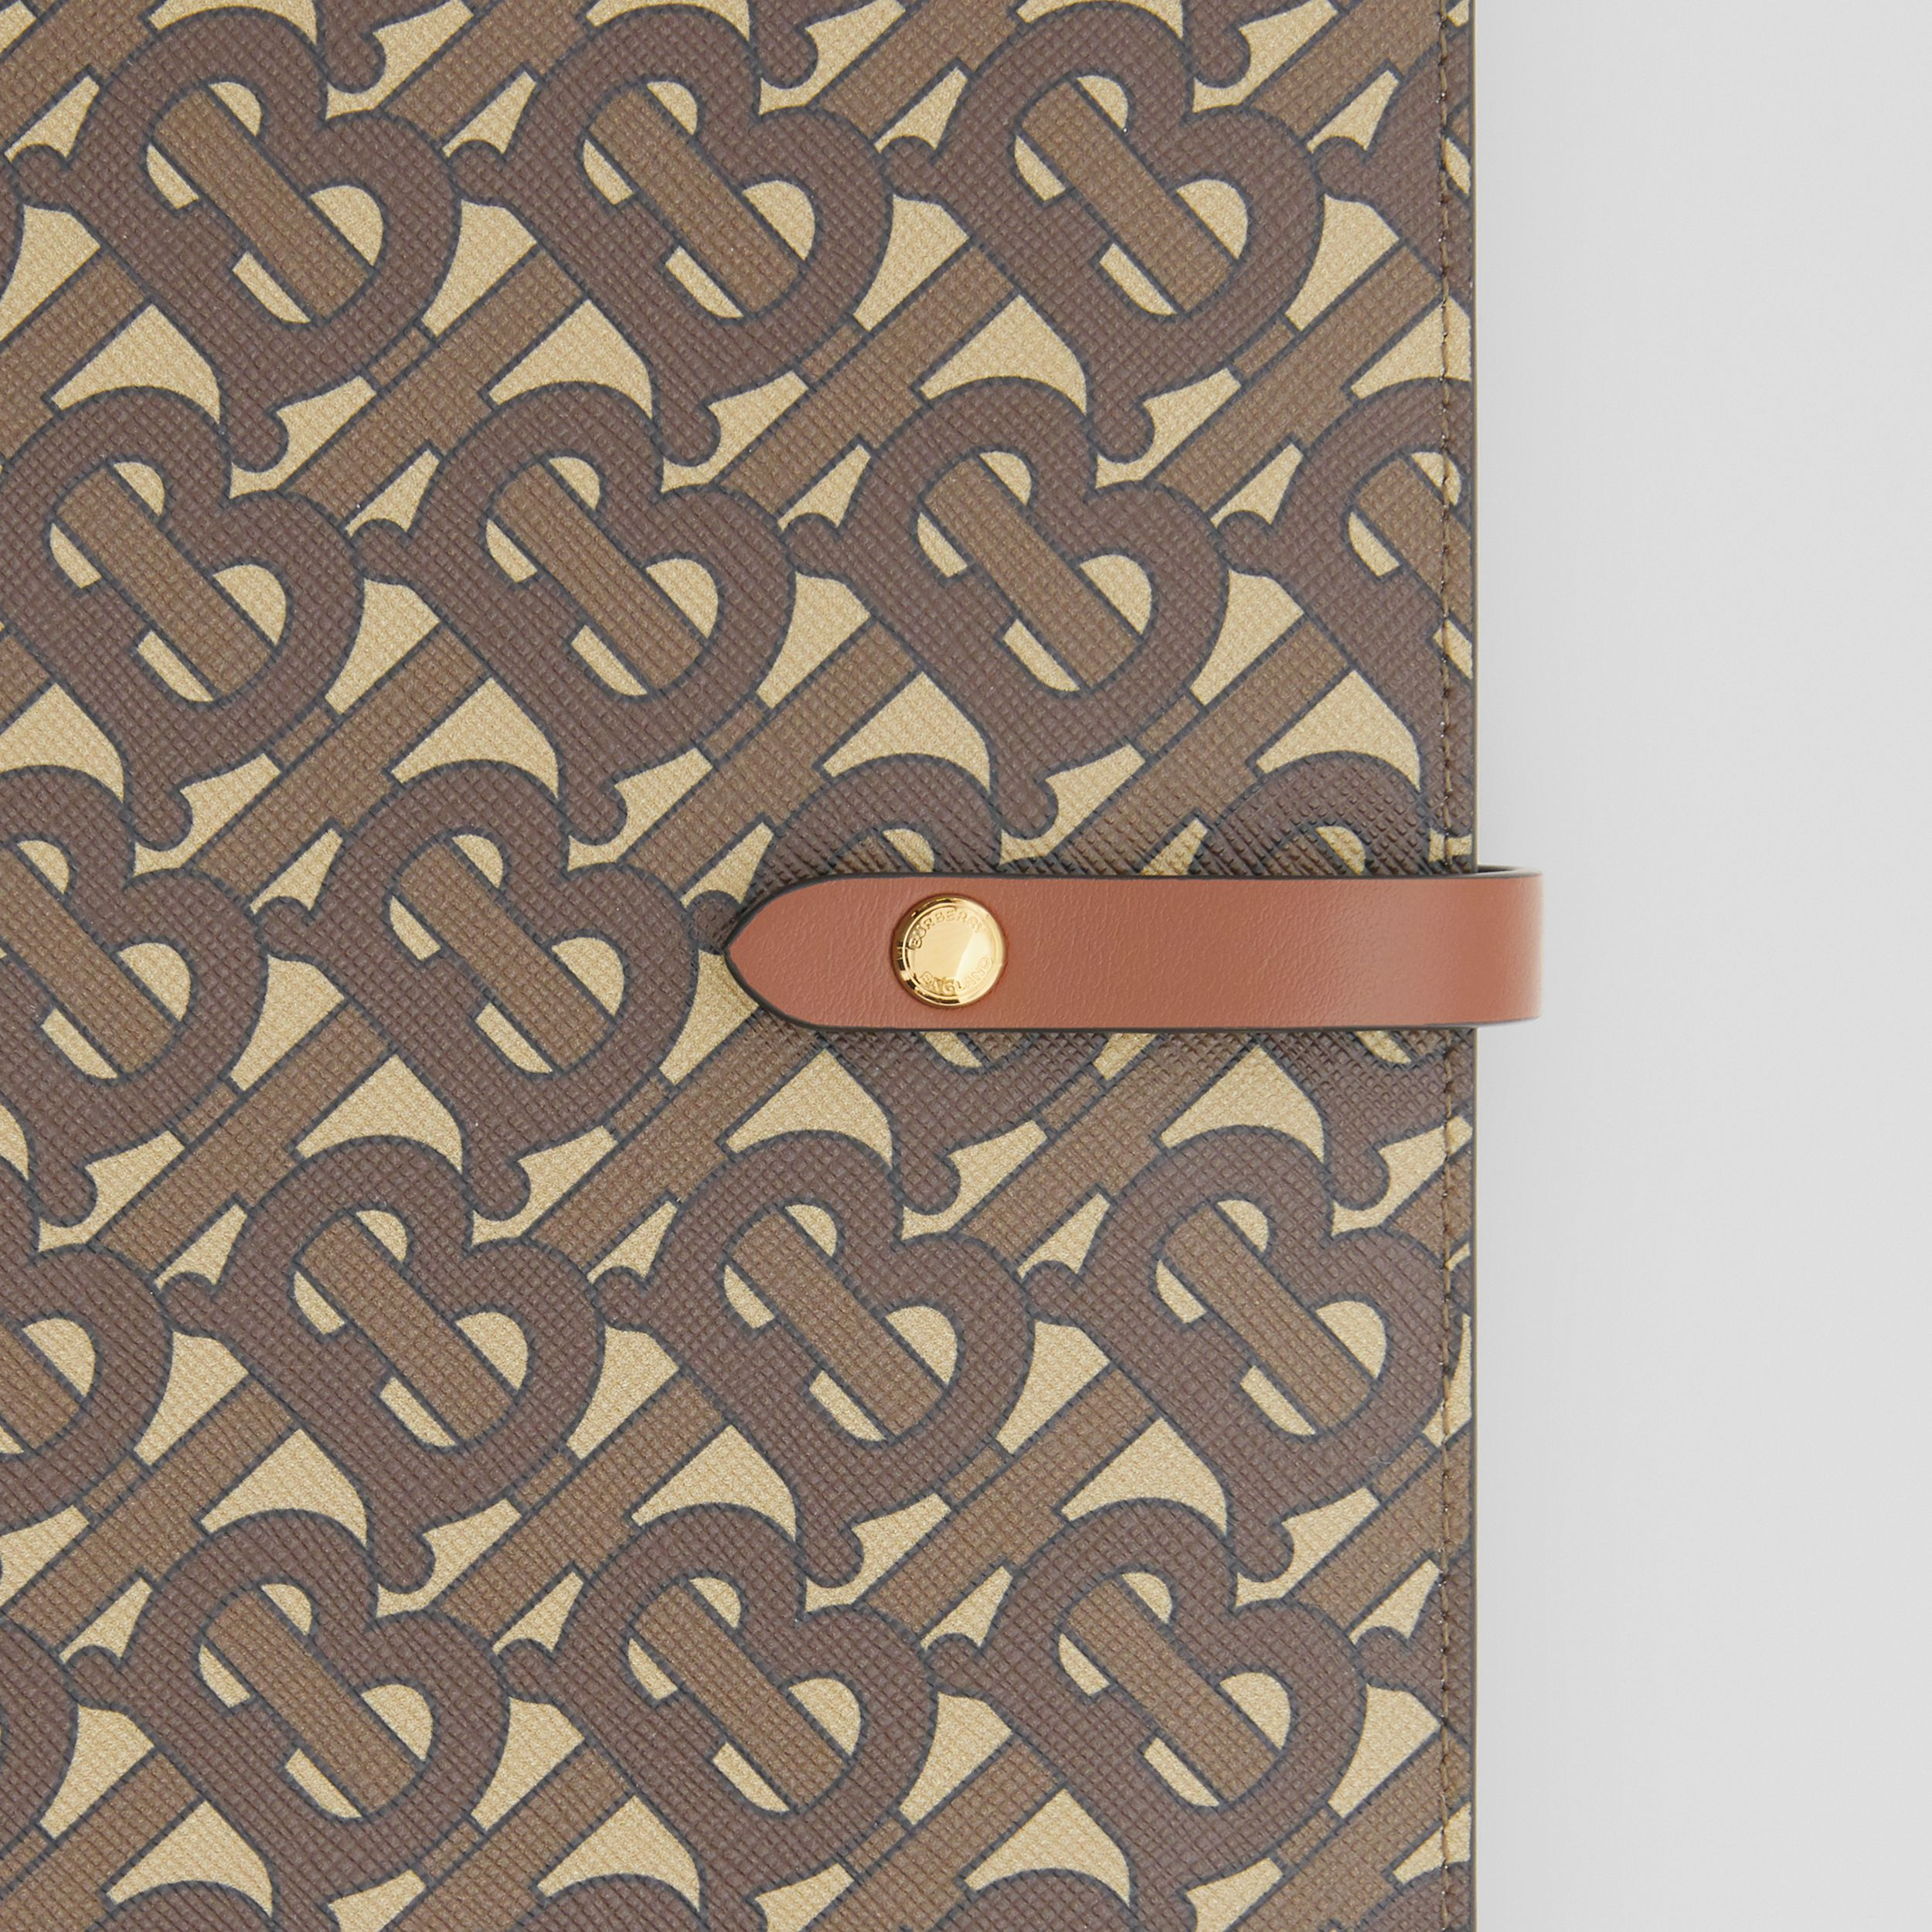 Monogram Print E-canvas Notebook Cover in Bridle Brown | Burberry Australia - 2